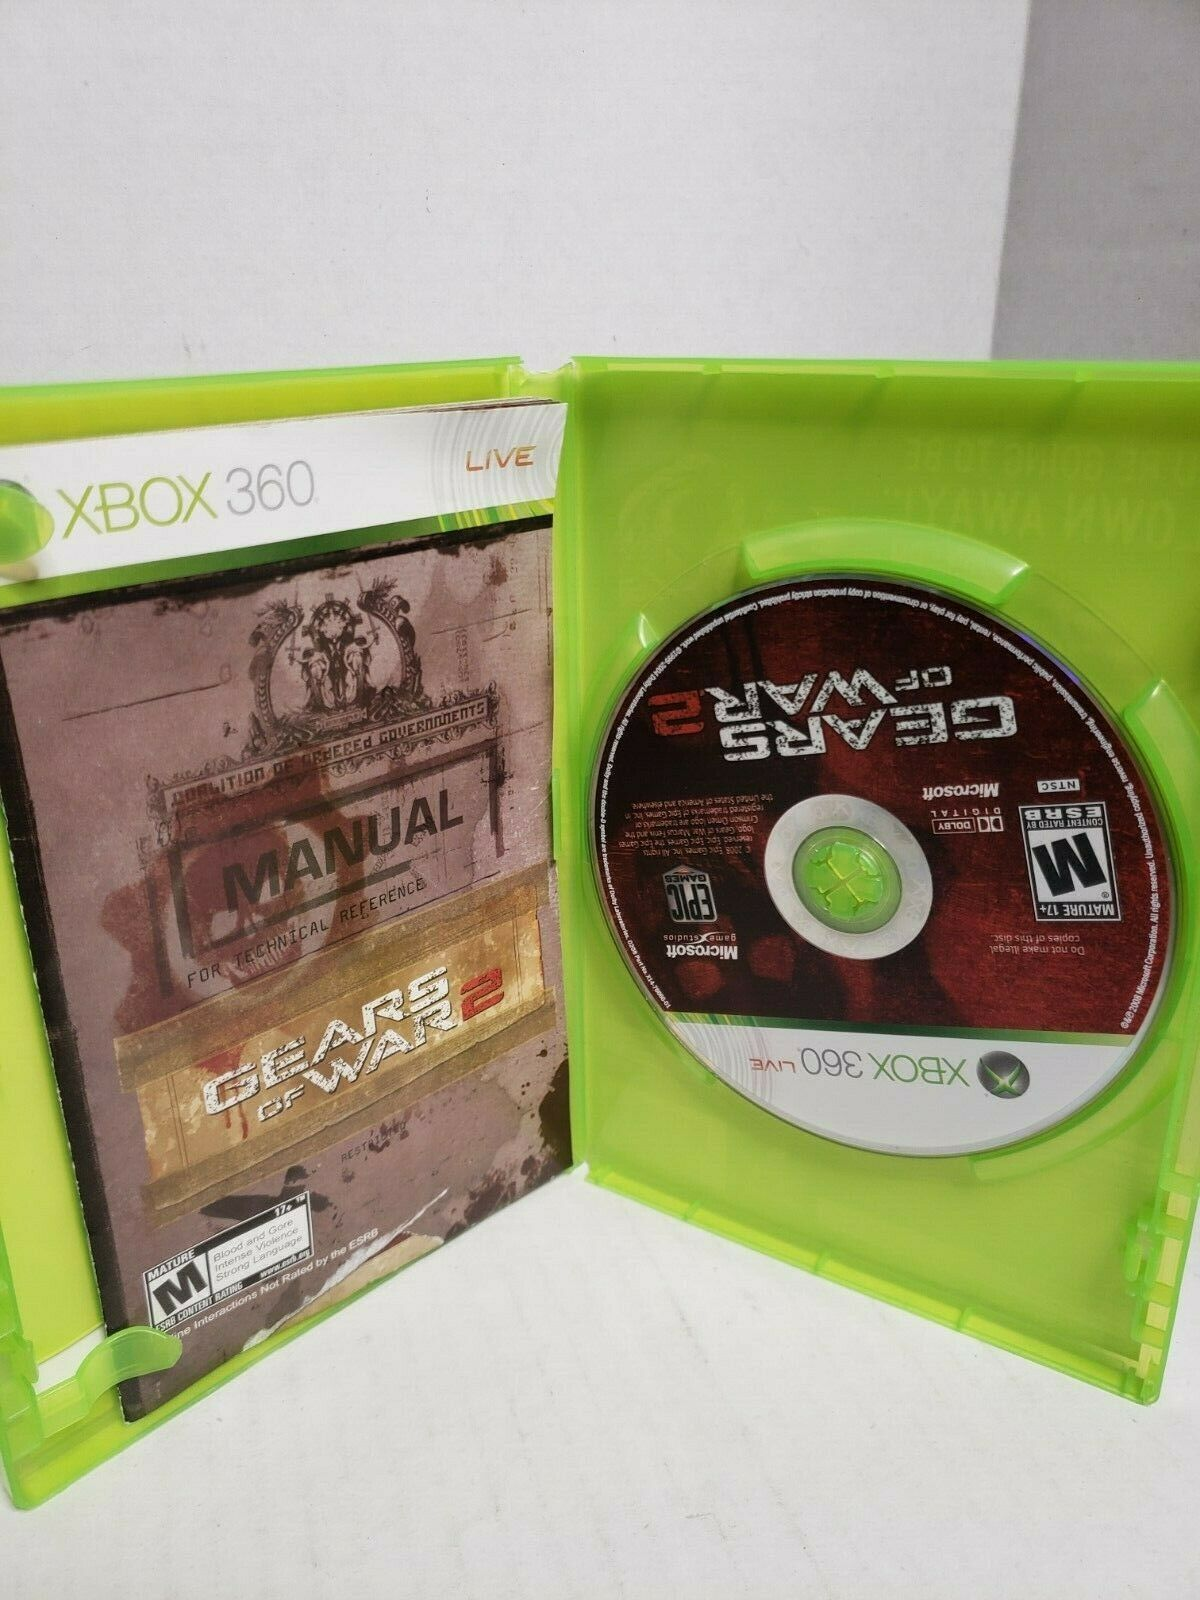 A1=Gears of War 2 (Microsoft Xbox 360, 2008) image 3